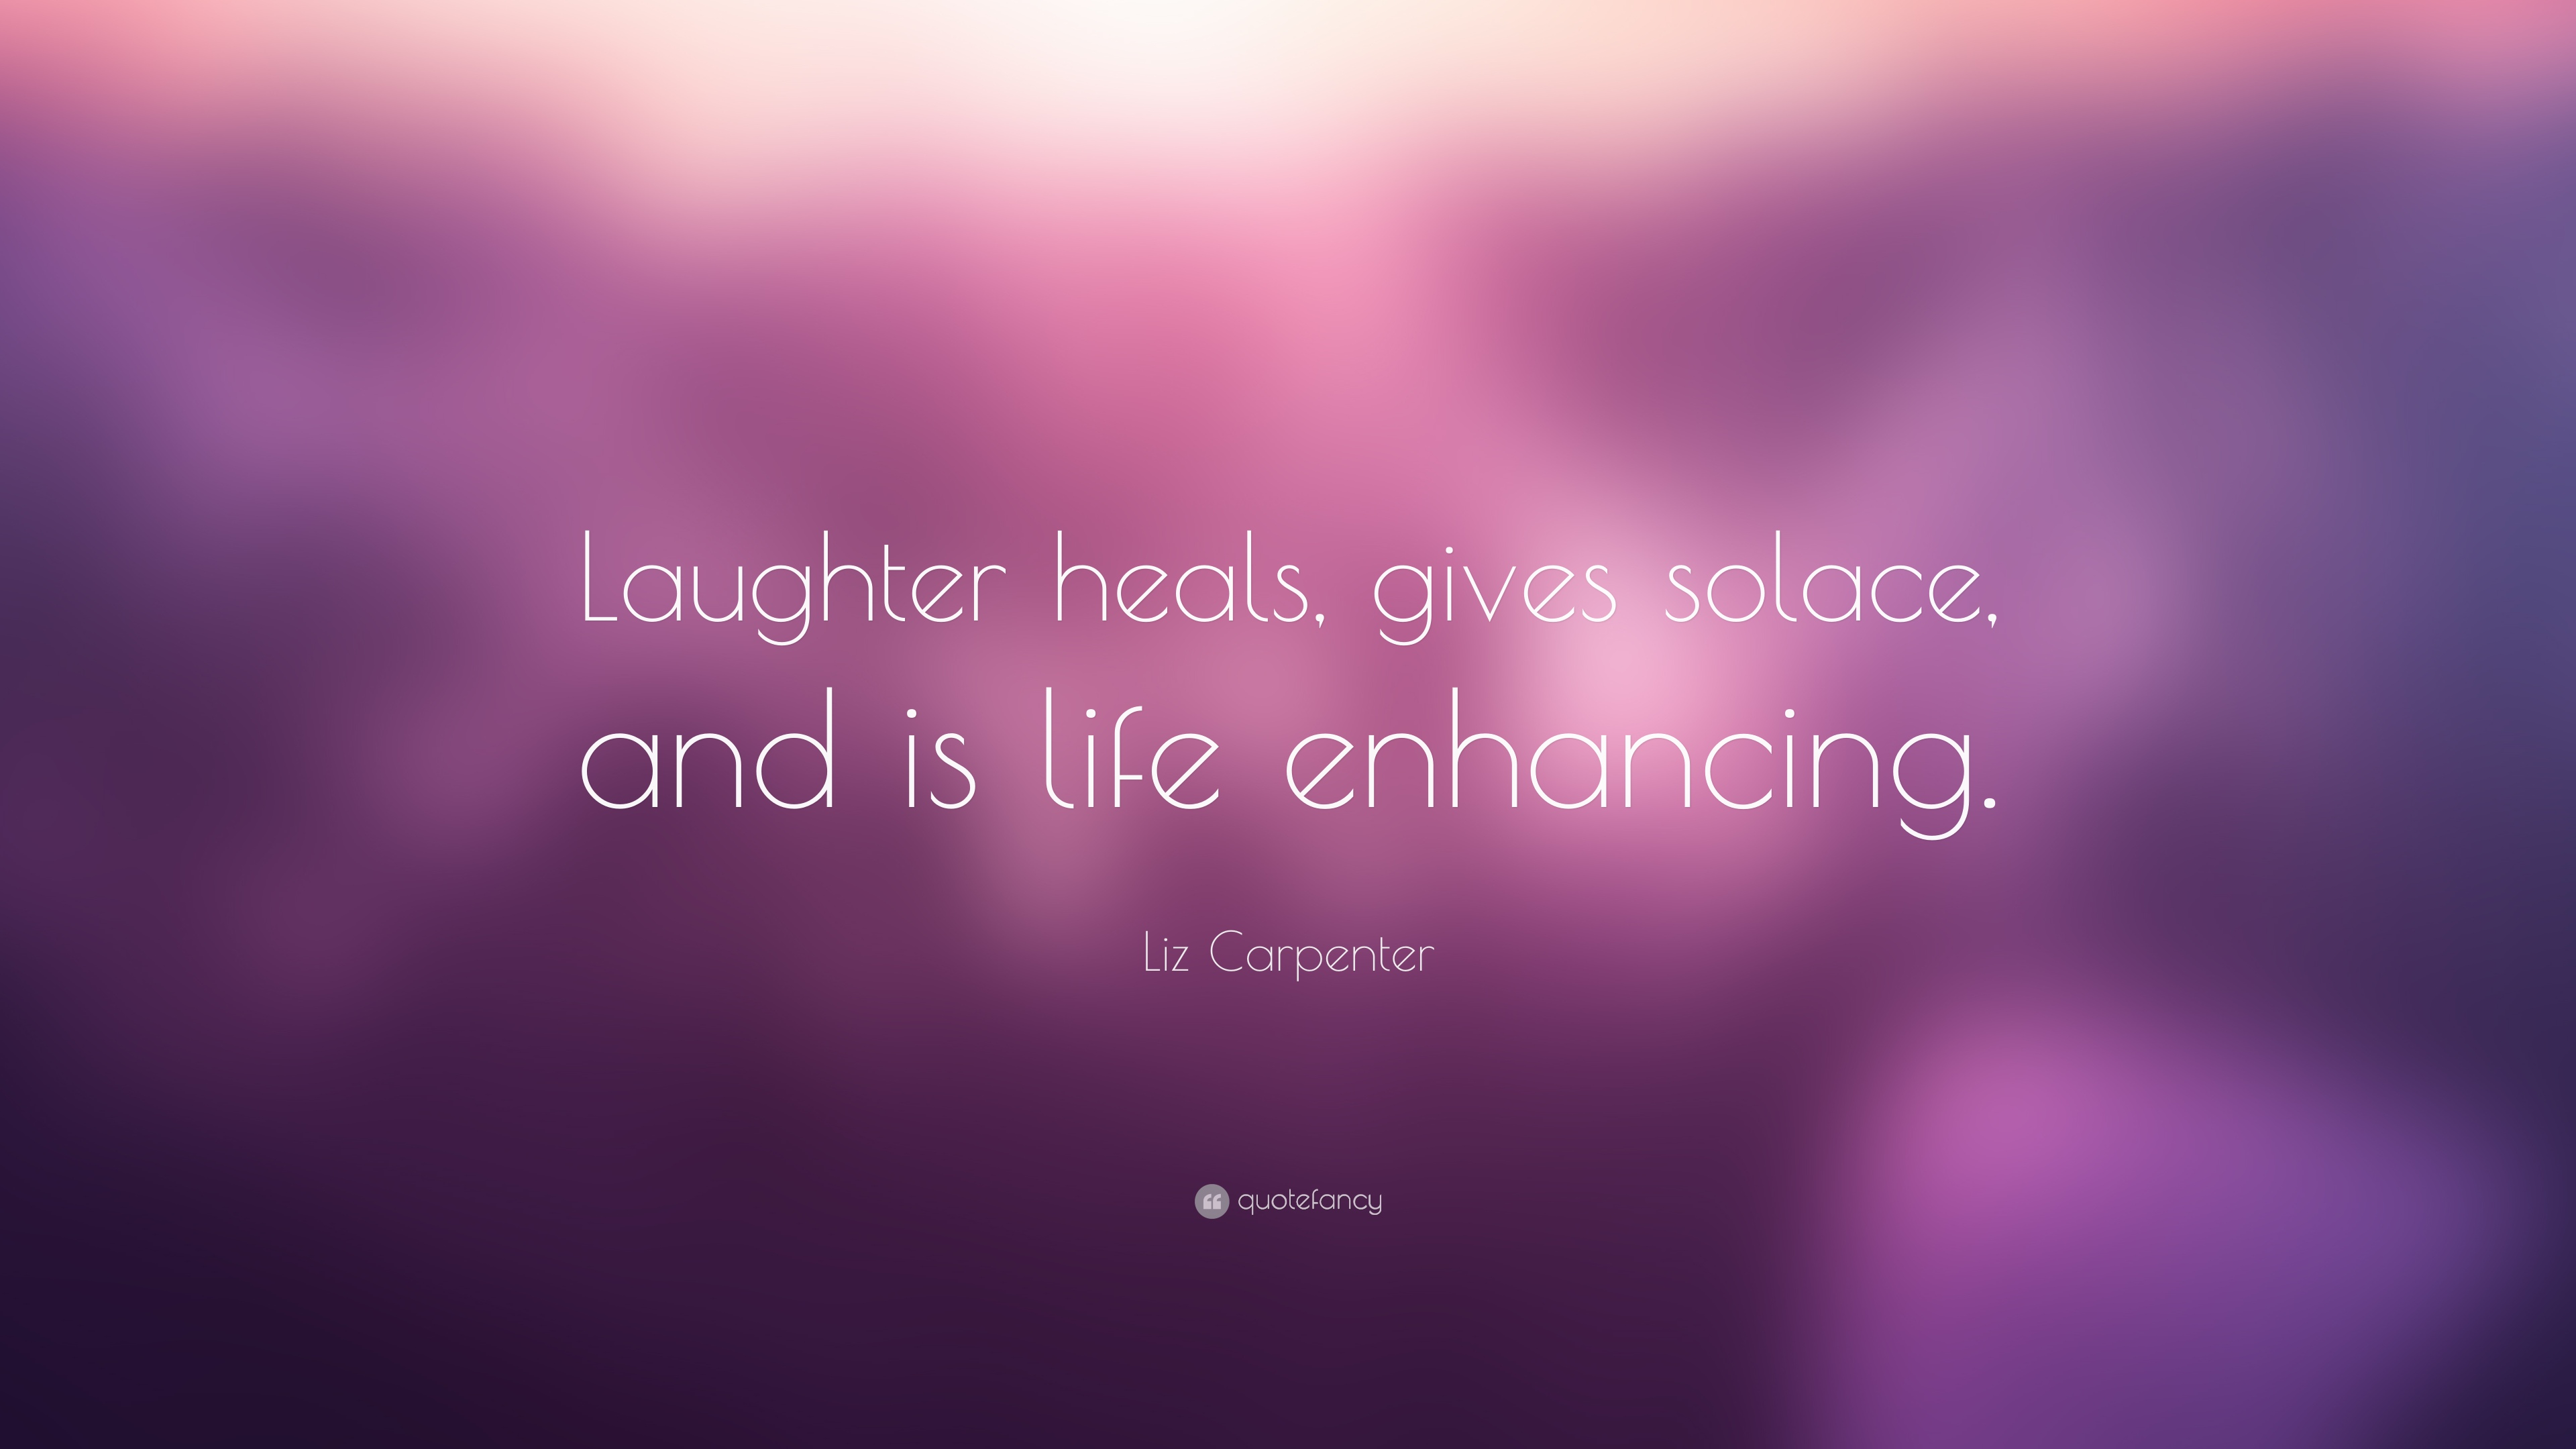 Liz Carpenter Quotes 10 Wallpapers Quotefancy